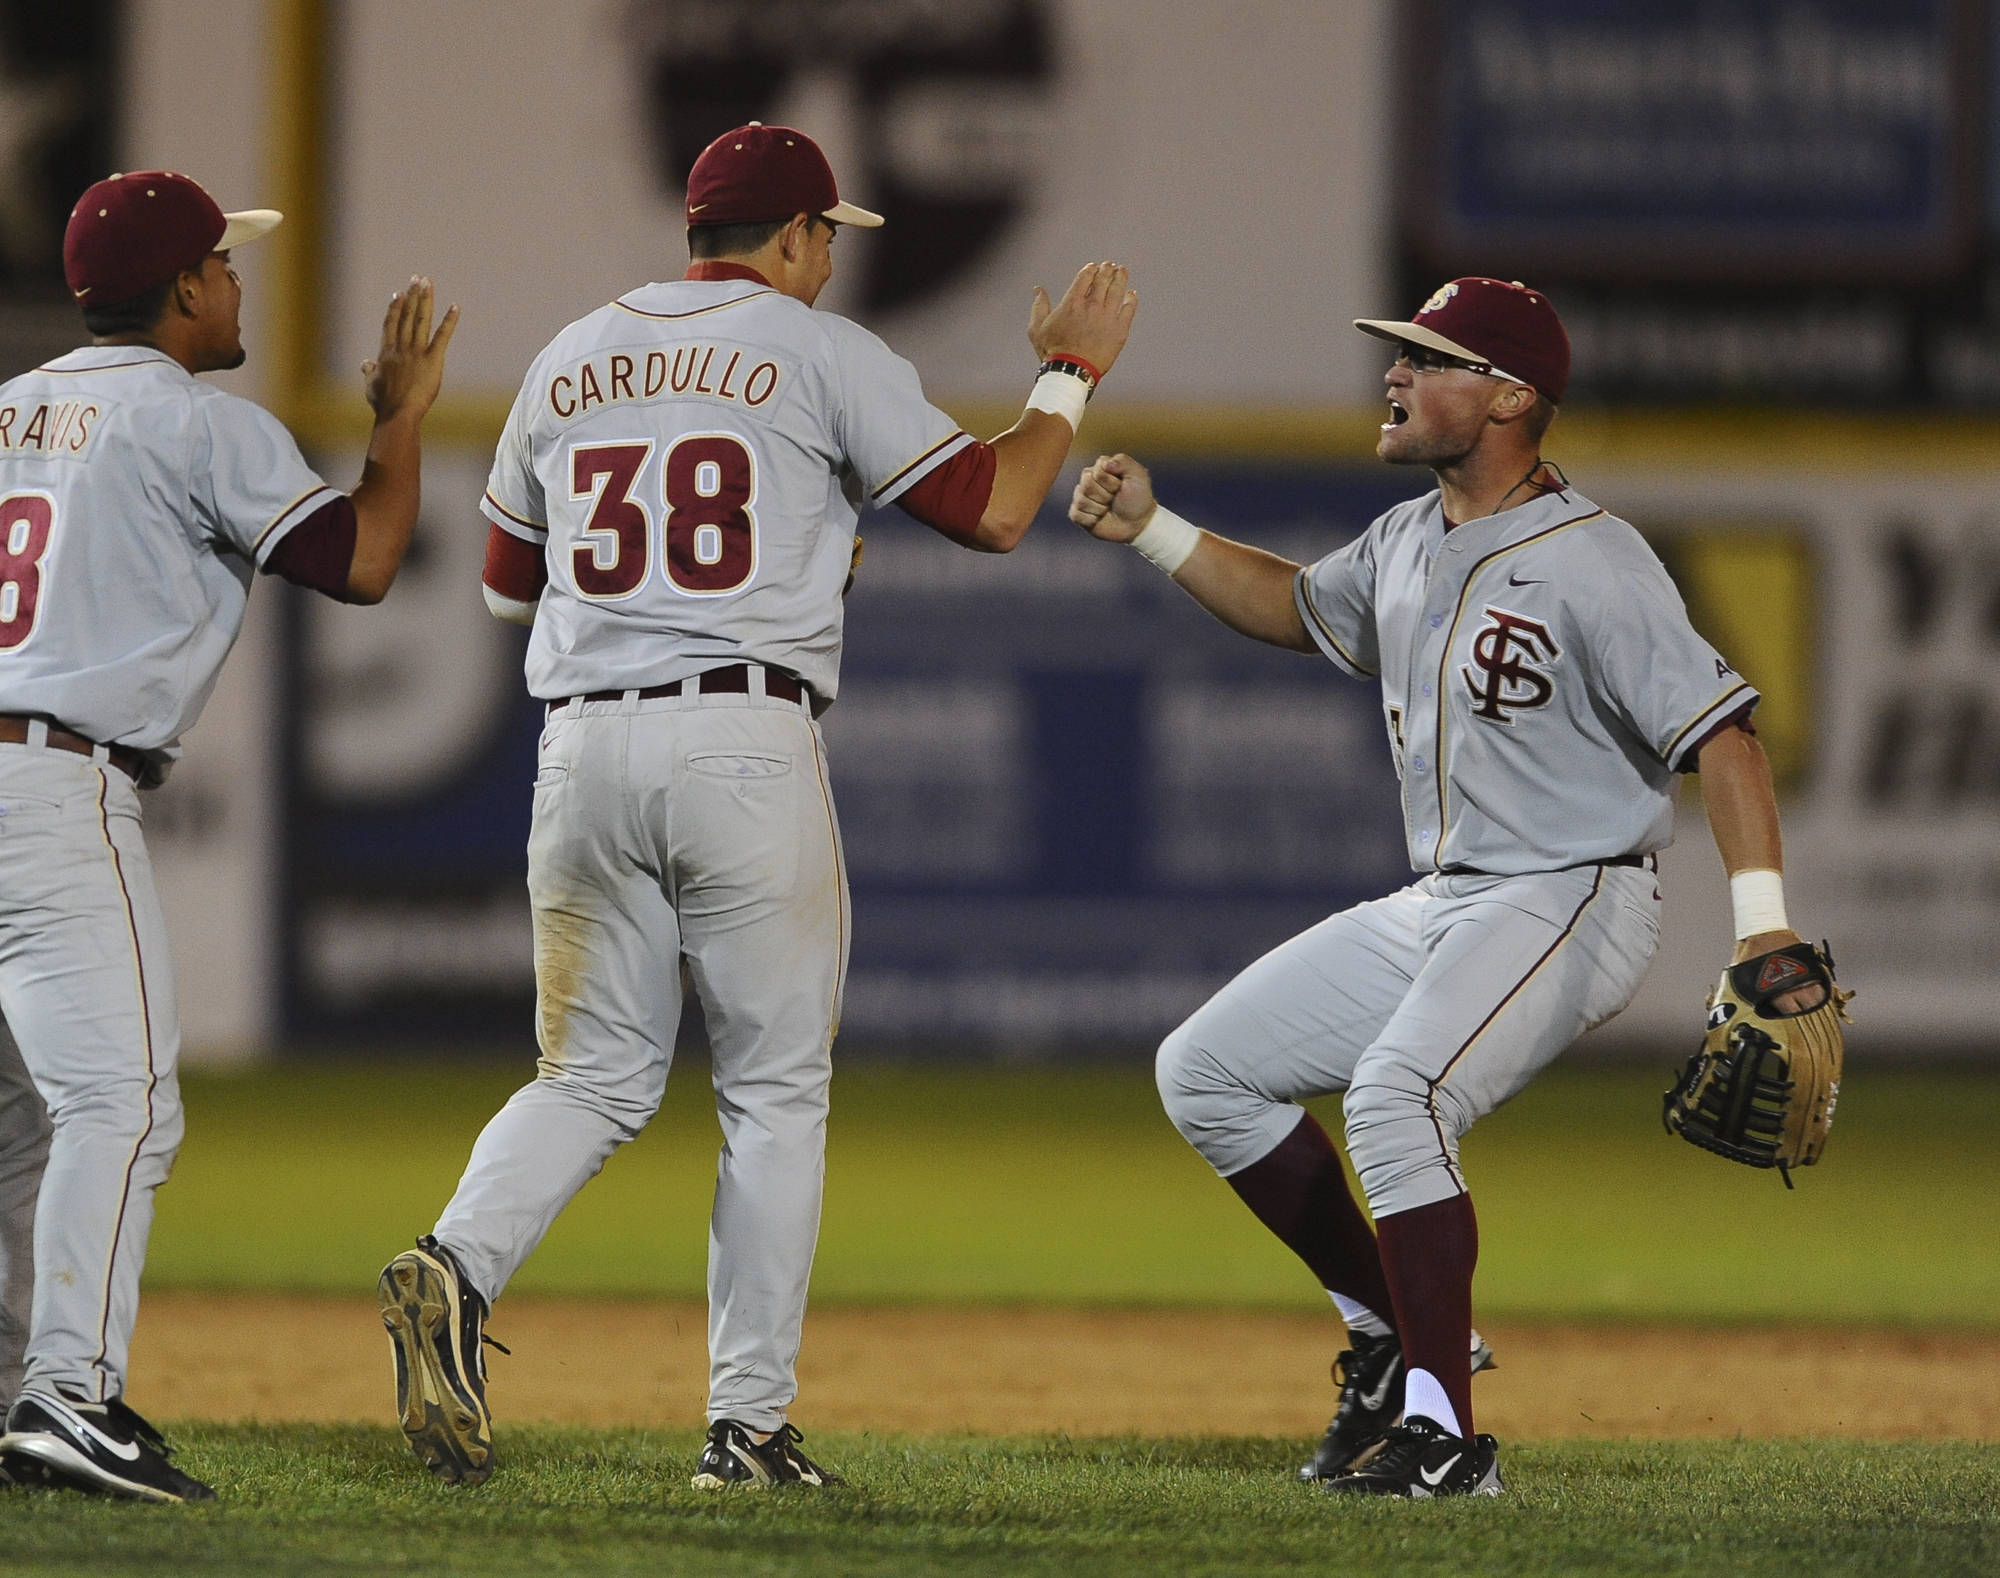 Devon Travis, Stephen Cardullo, and James Ramsey celebrate the win (Photo Courtesy Steve McLaughlin)